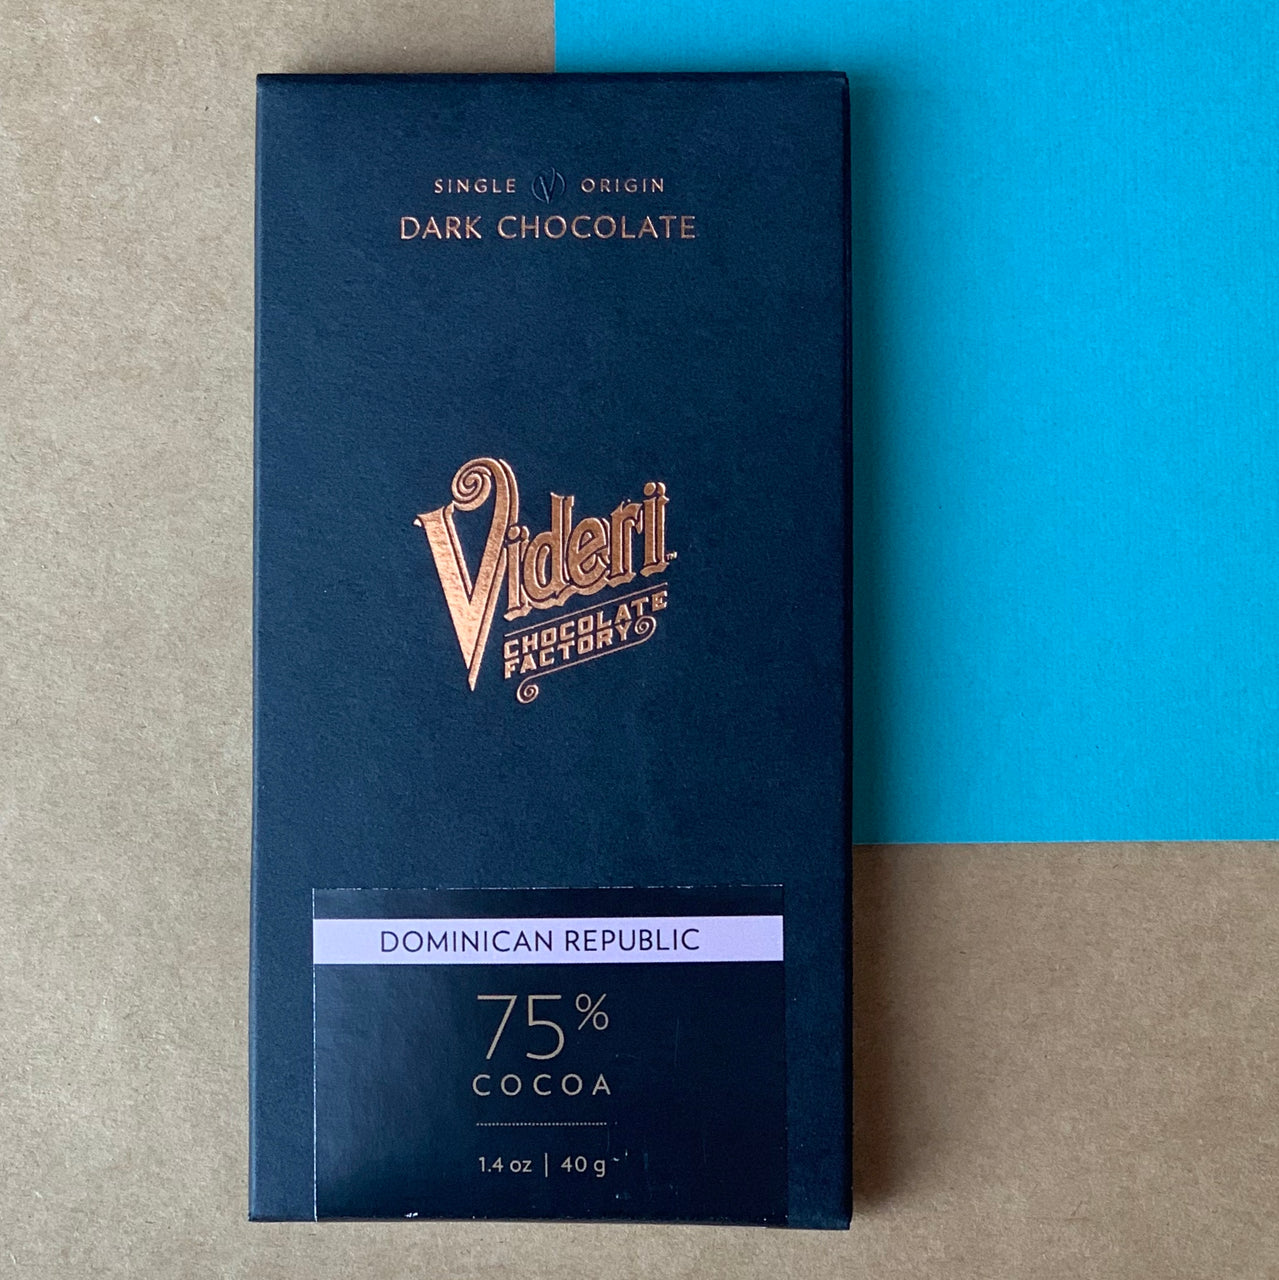 Black Mountain Chocolate Factory prides themselves on curating a collection of some of the best small batch chocolate made in North Carolina.  This includes the Videri 75% Domincan Bar, produced in Raleigh, NC